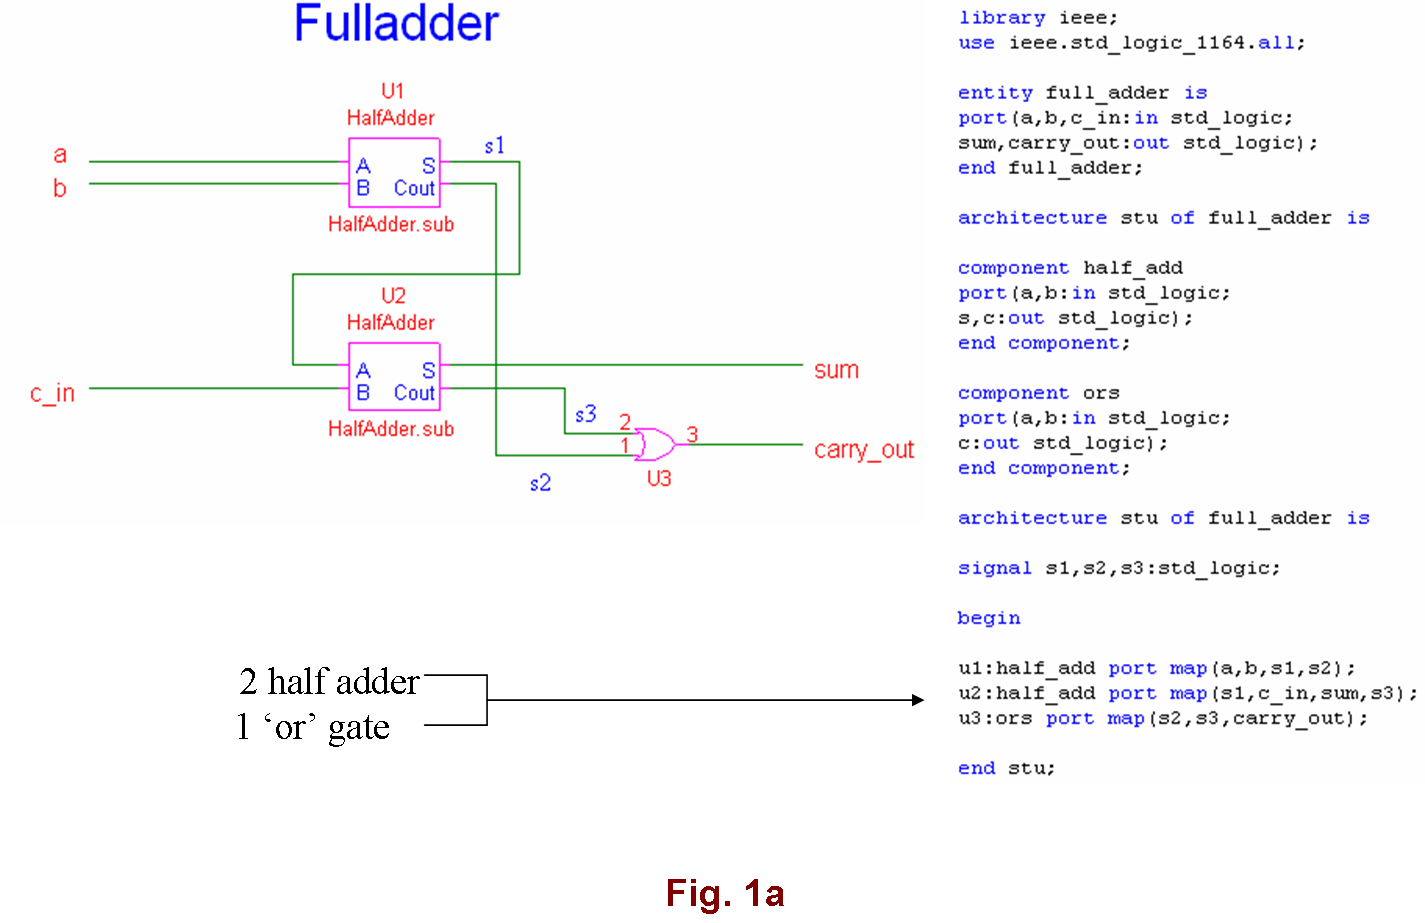 Splinters Structural Way Of Programming Full Adder Circuit Will Happen If The Designer Doesnt Able To Visualize Fulladder Into Two Halfadders And One Or Gate In That Case He Designs